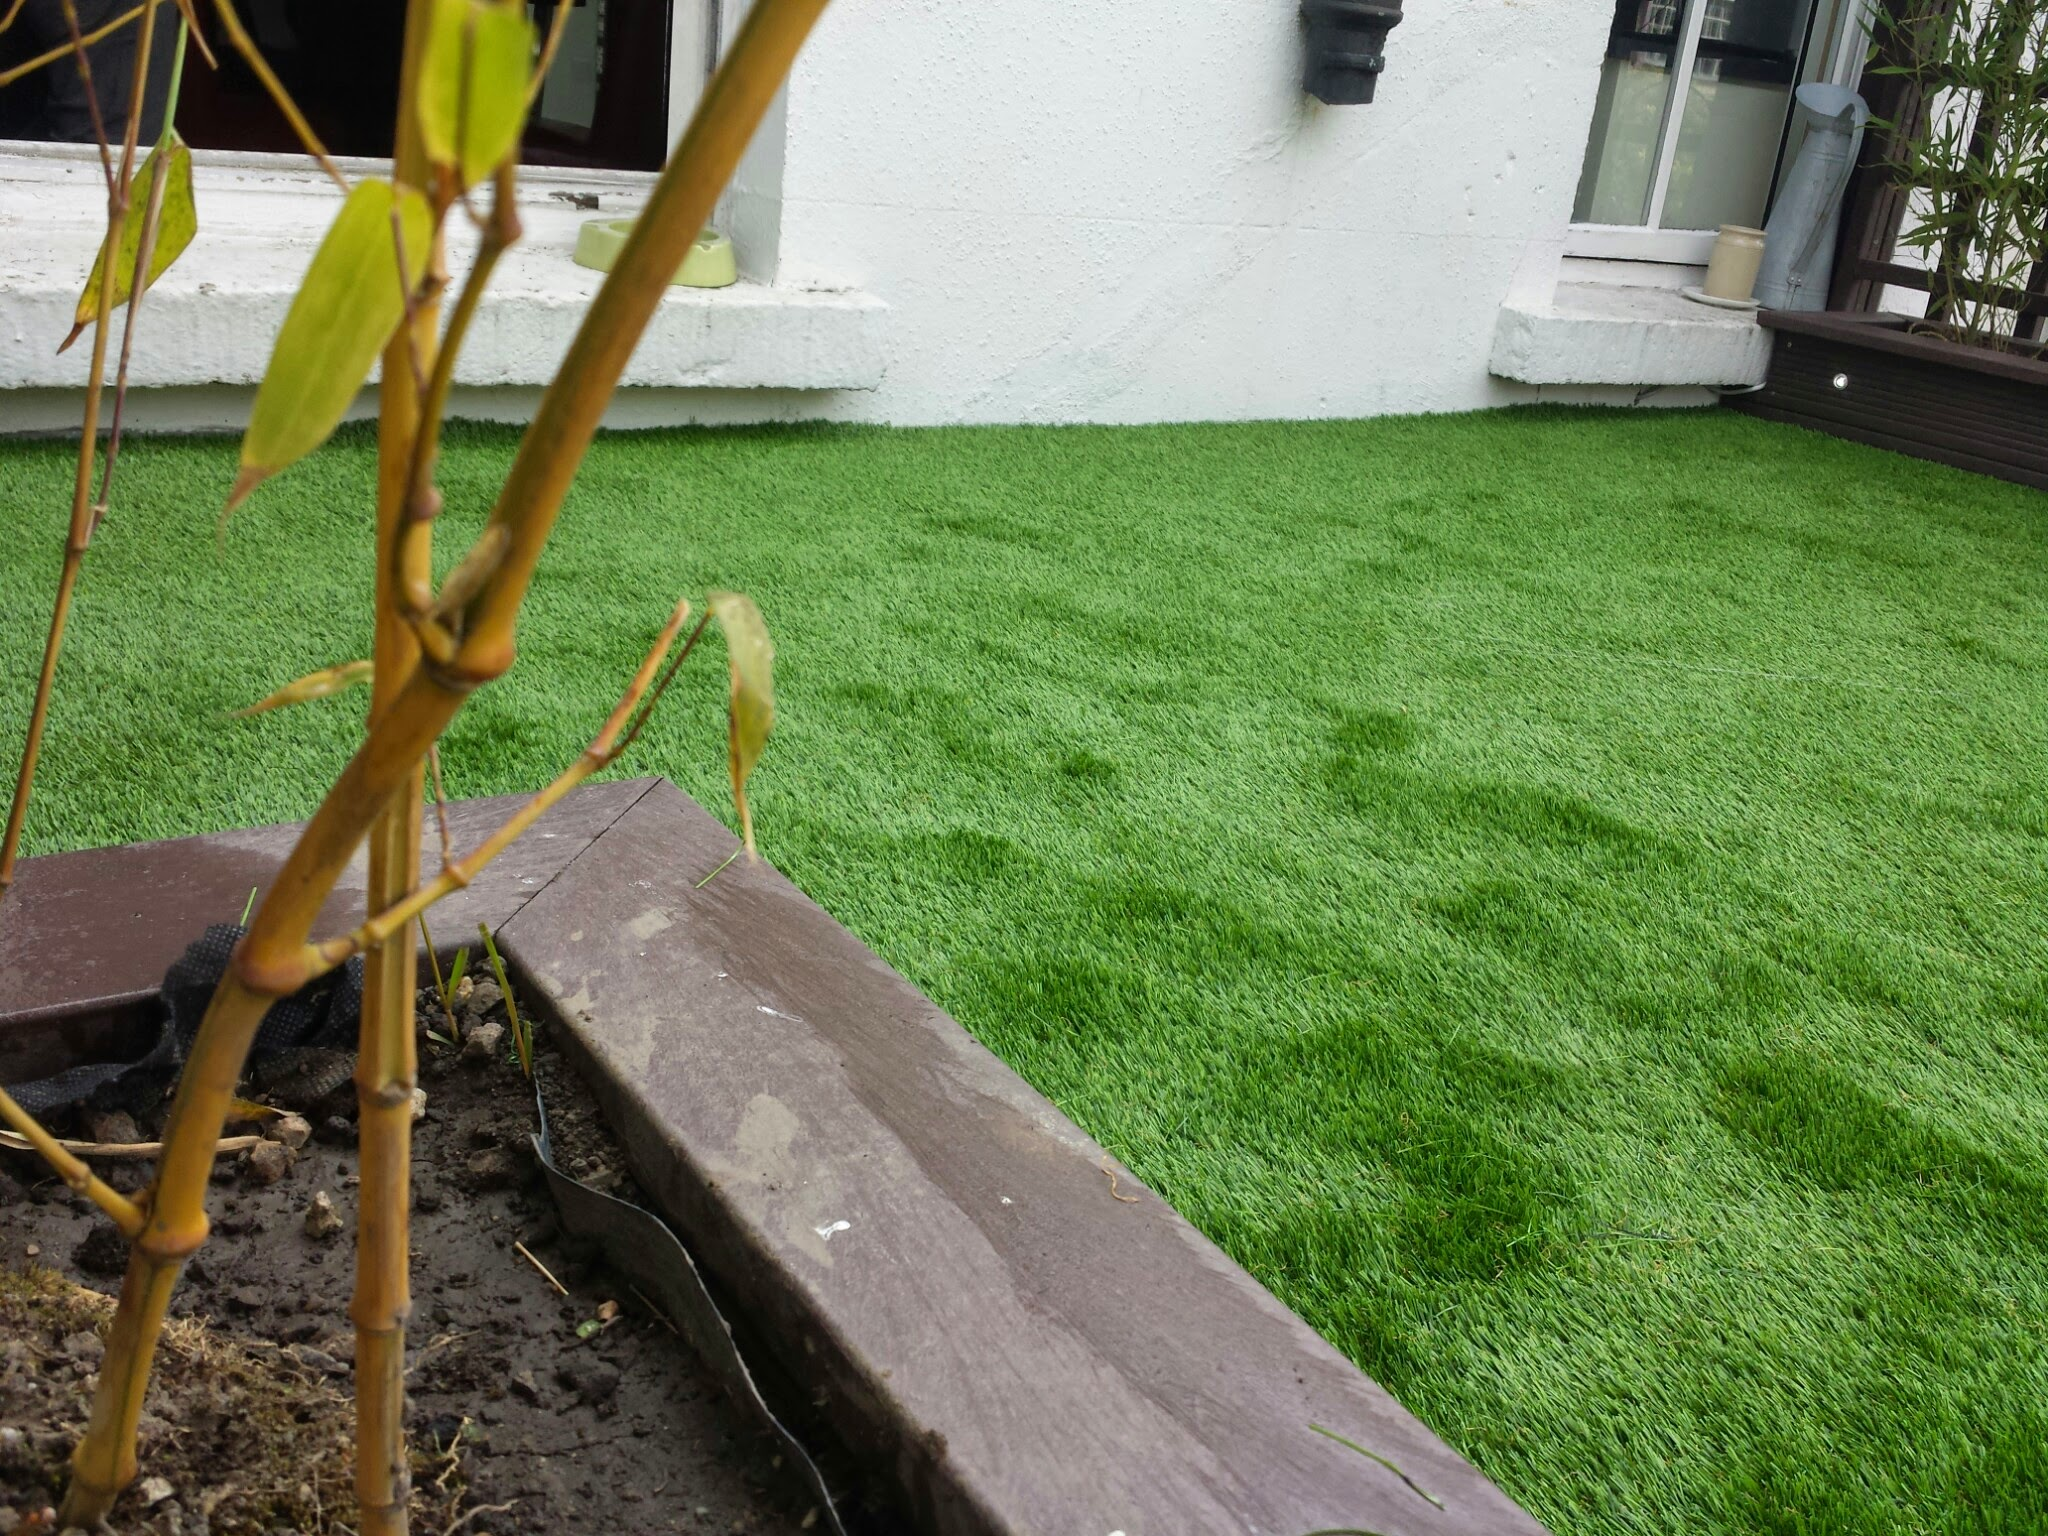 Raised beds and grass